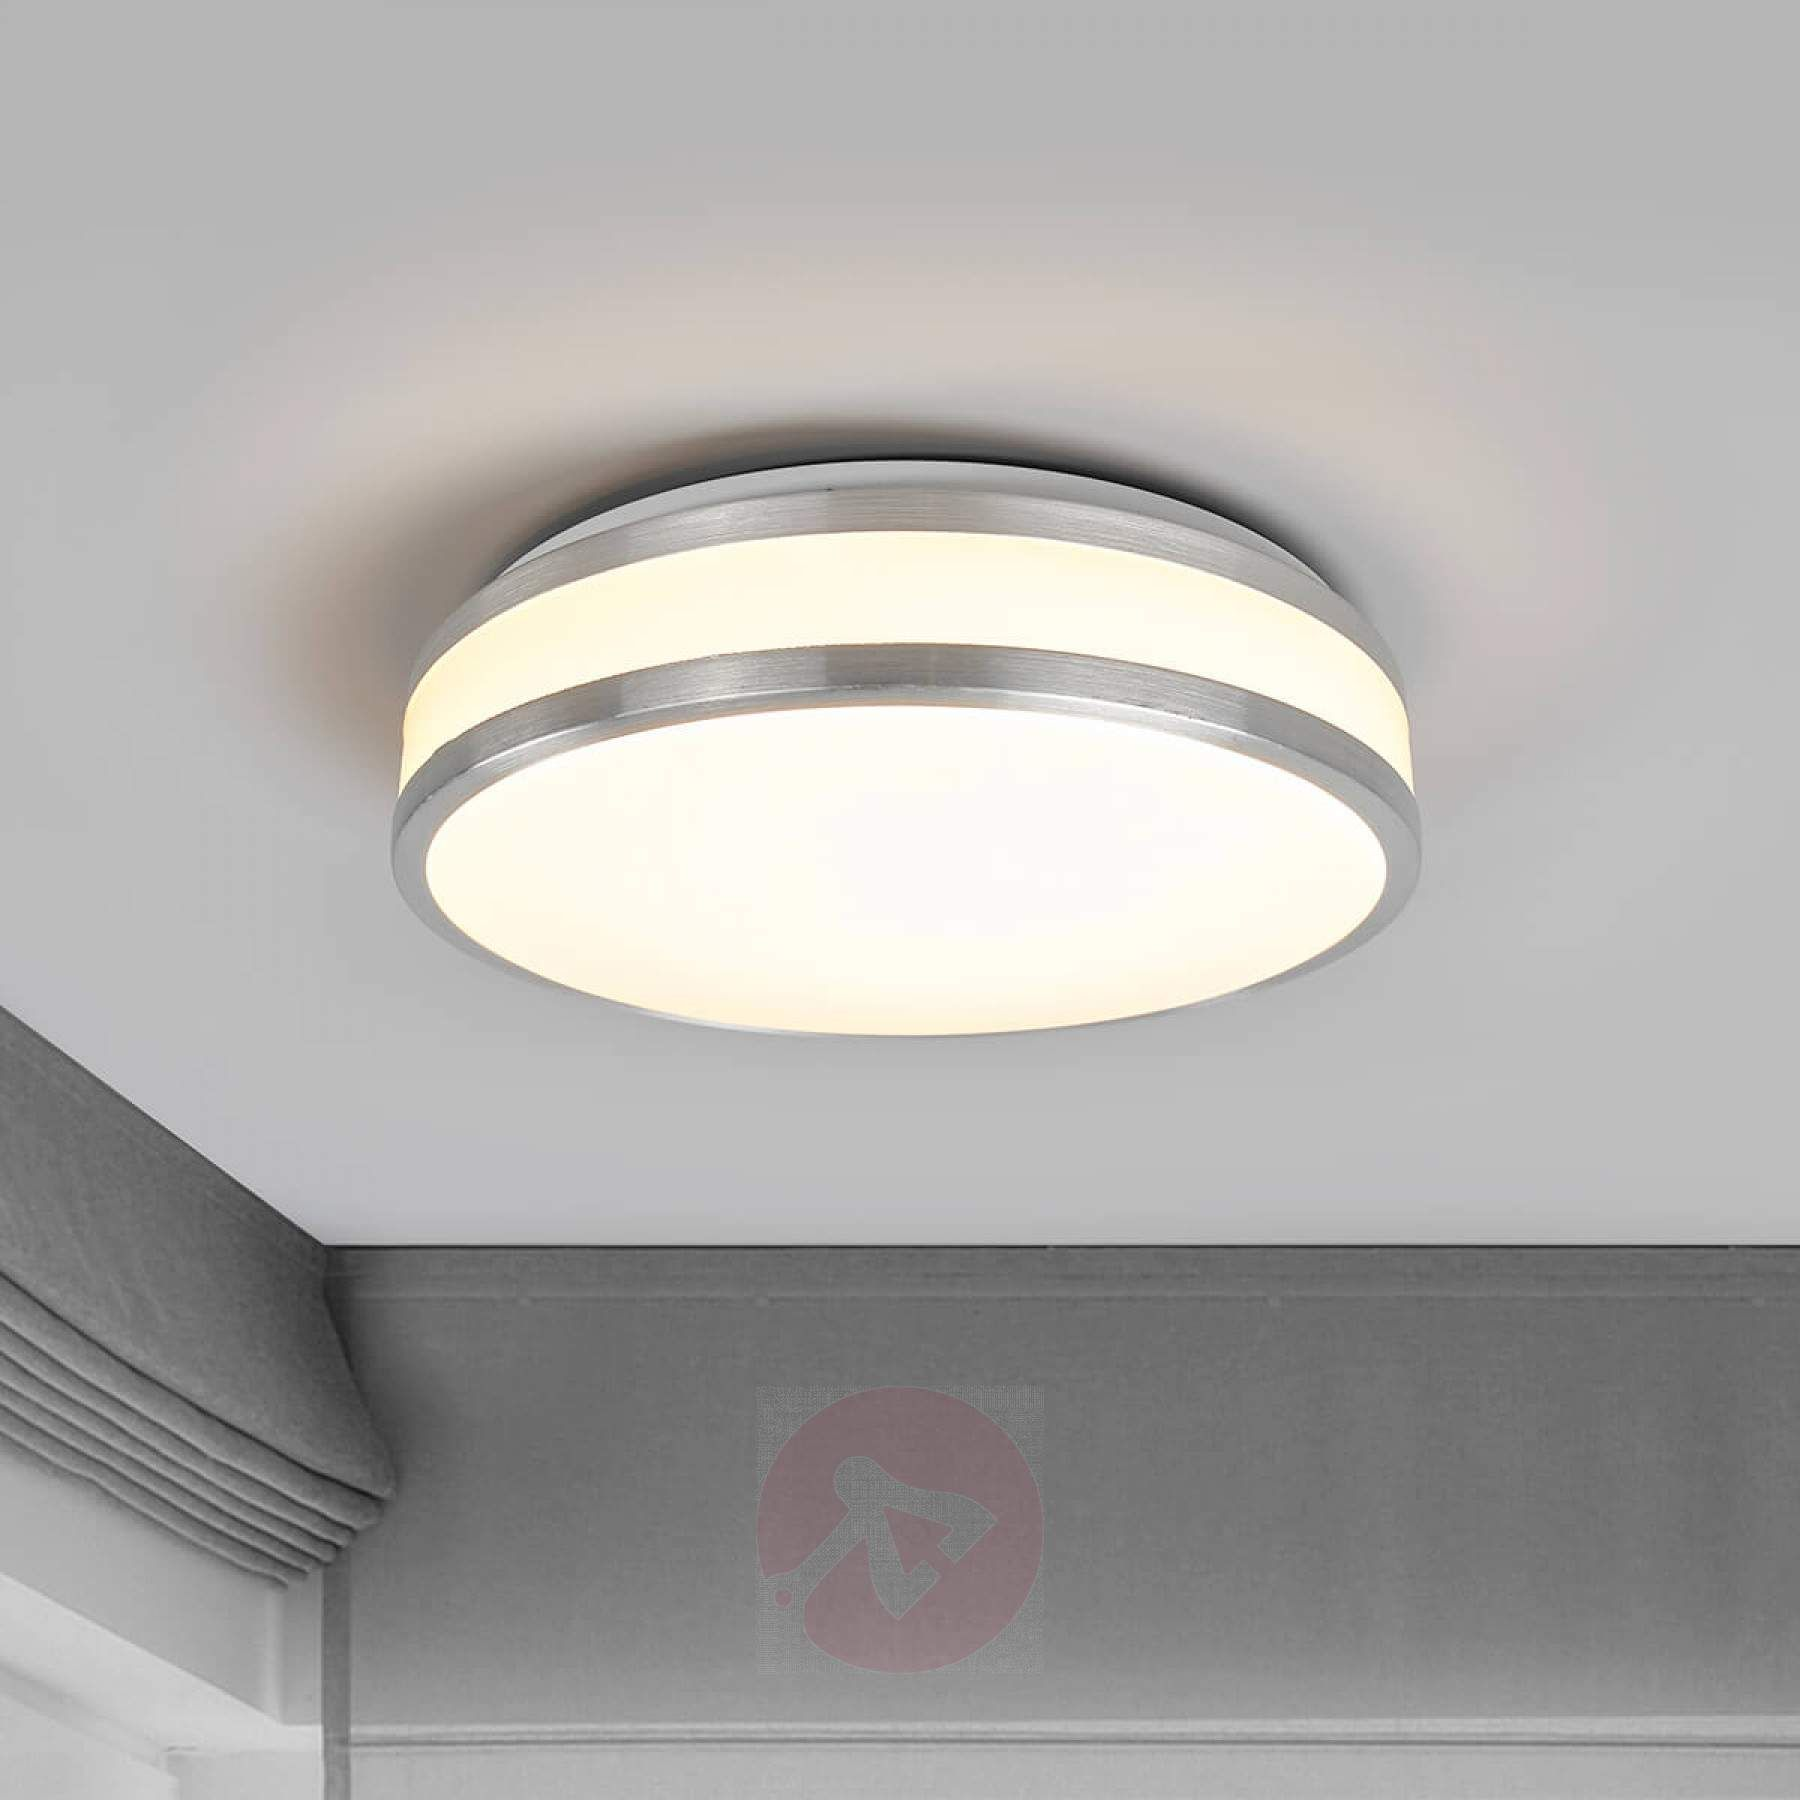 Edona Ceiling Lamp With Bright Leds Ceiling Lamp Ceiling Lights Ceiling